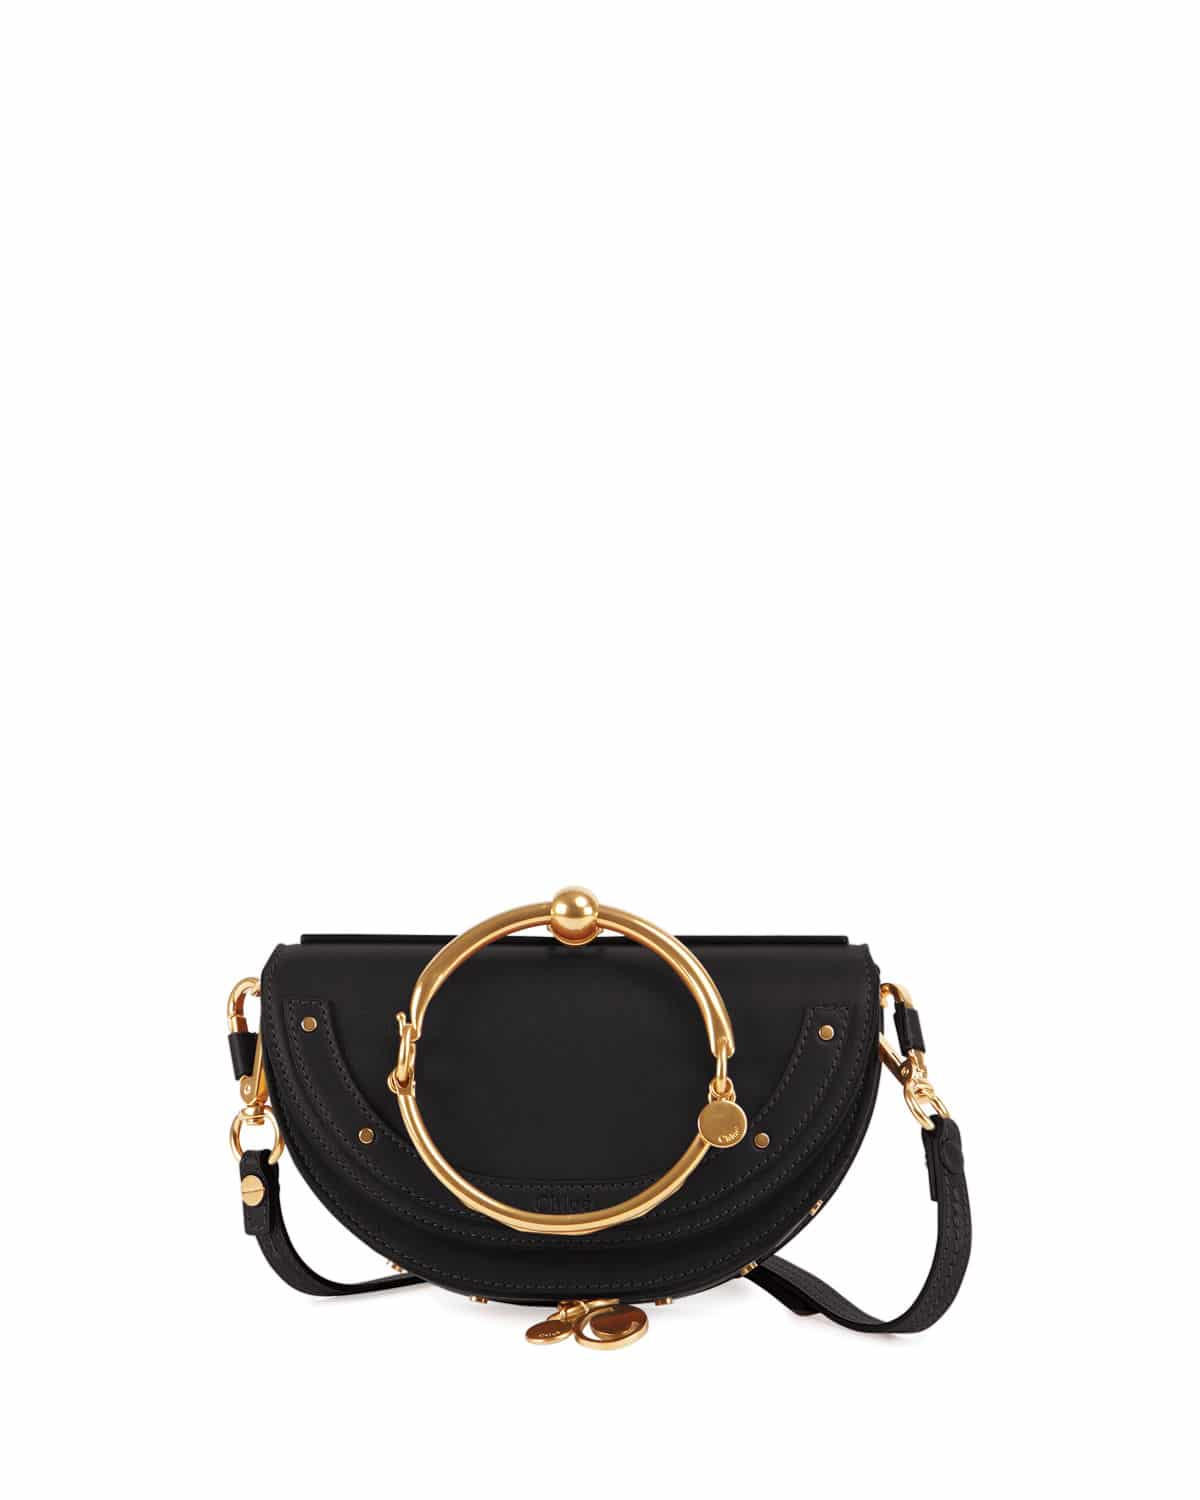 Chloe Spring Summer 2017 Bag Collection Spotted Fashion